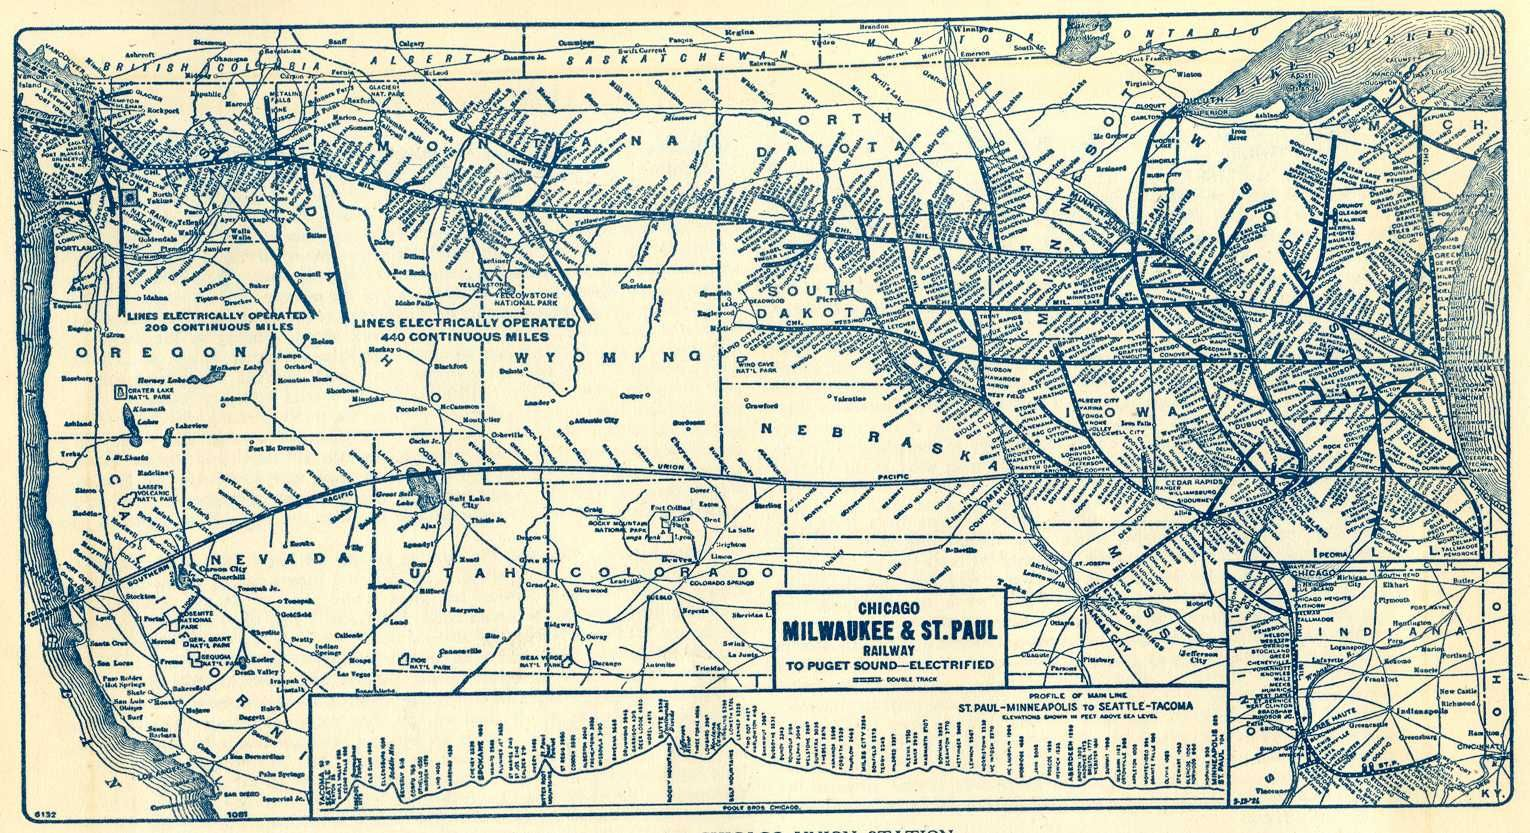 Pin by SiouxEQ on trains | Milwaukee road, System map, Milwaukee Milwaukee Road Route Map Minnesota on wheeling & lake erie route map, union pacific route map, virginia & truckee route map, chicago great western route map, united route map, grand trunk route map, milwaukee railroad lines, air canada route map, milwaukee railroad in idaho, air china route map, georgia railroad route map, soo line railroad map, strasburg railroad route map, illinois central route map, mt. shasta route map, via rail canada route map, rock island route map, iberia route map, southern railway route map, dallas area rapid transit route map,